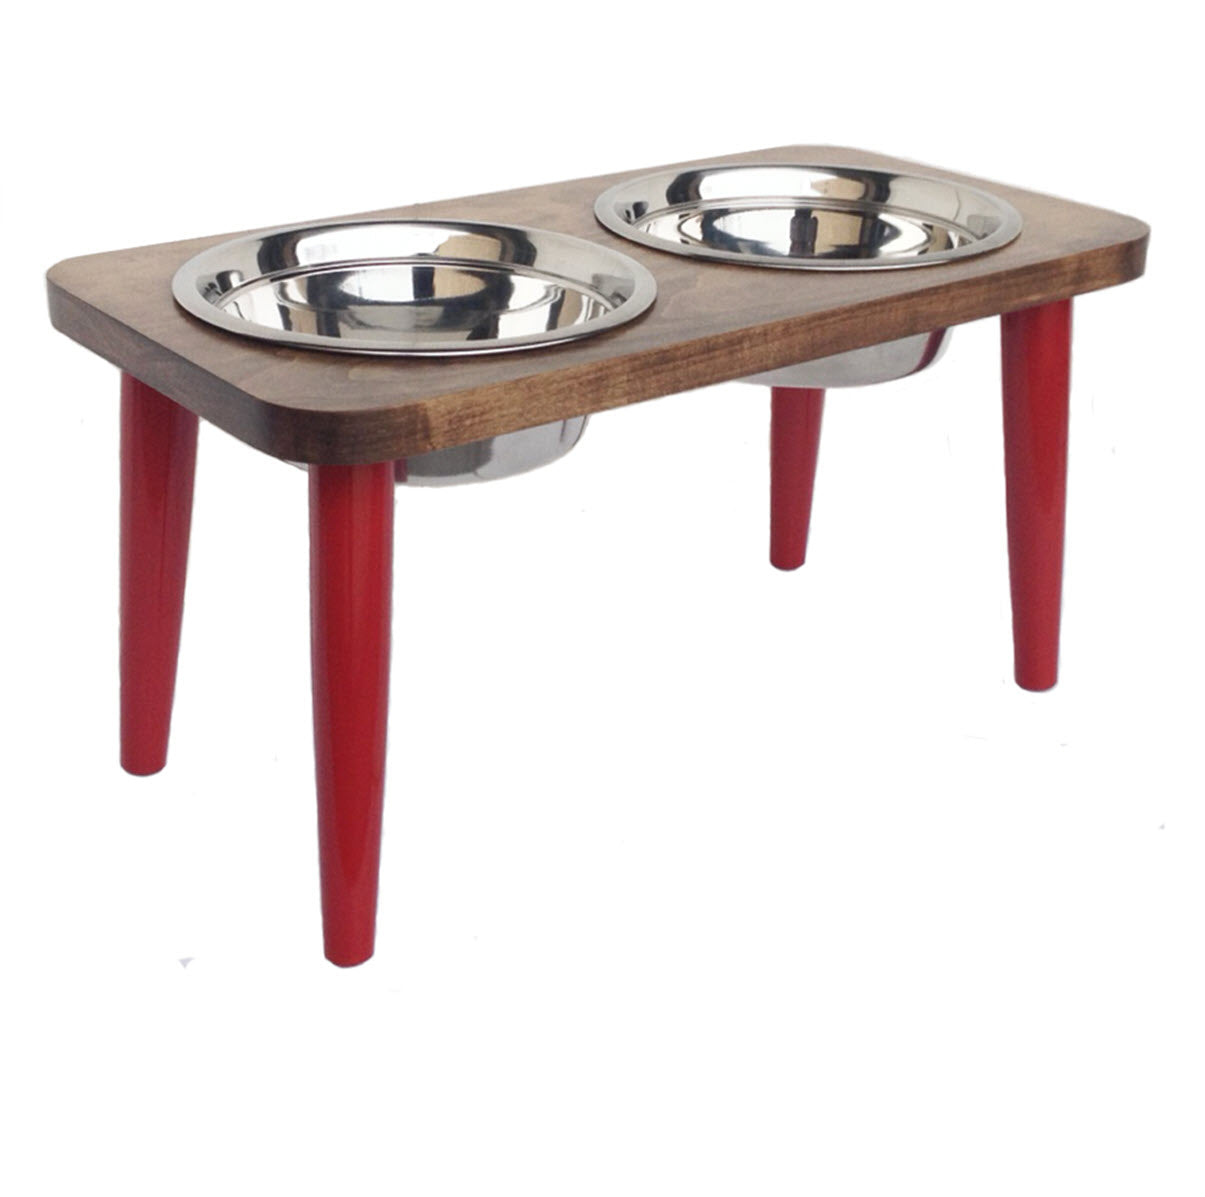 NMN Designs Elevated Dog Bowl Stand Double Raised Hardwood Red